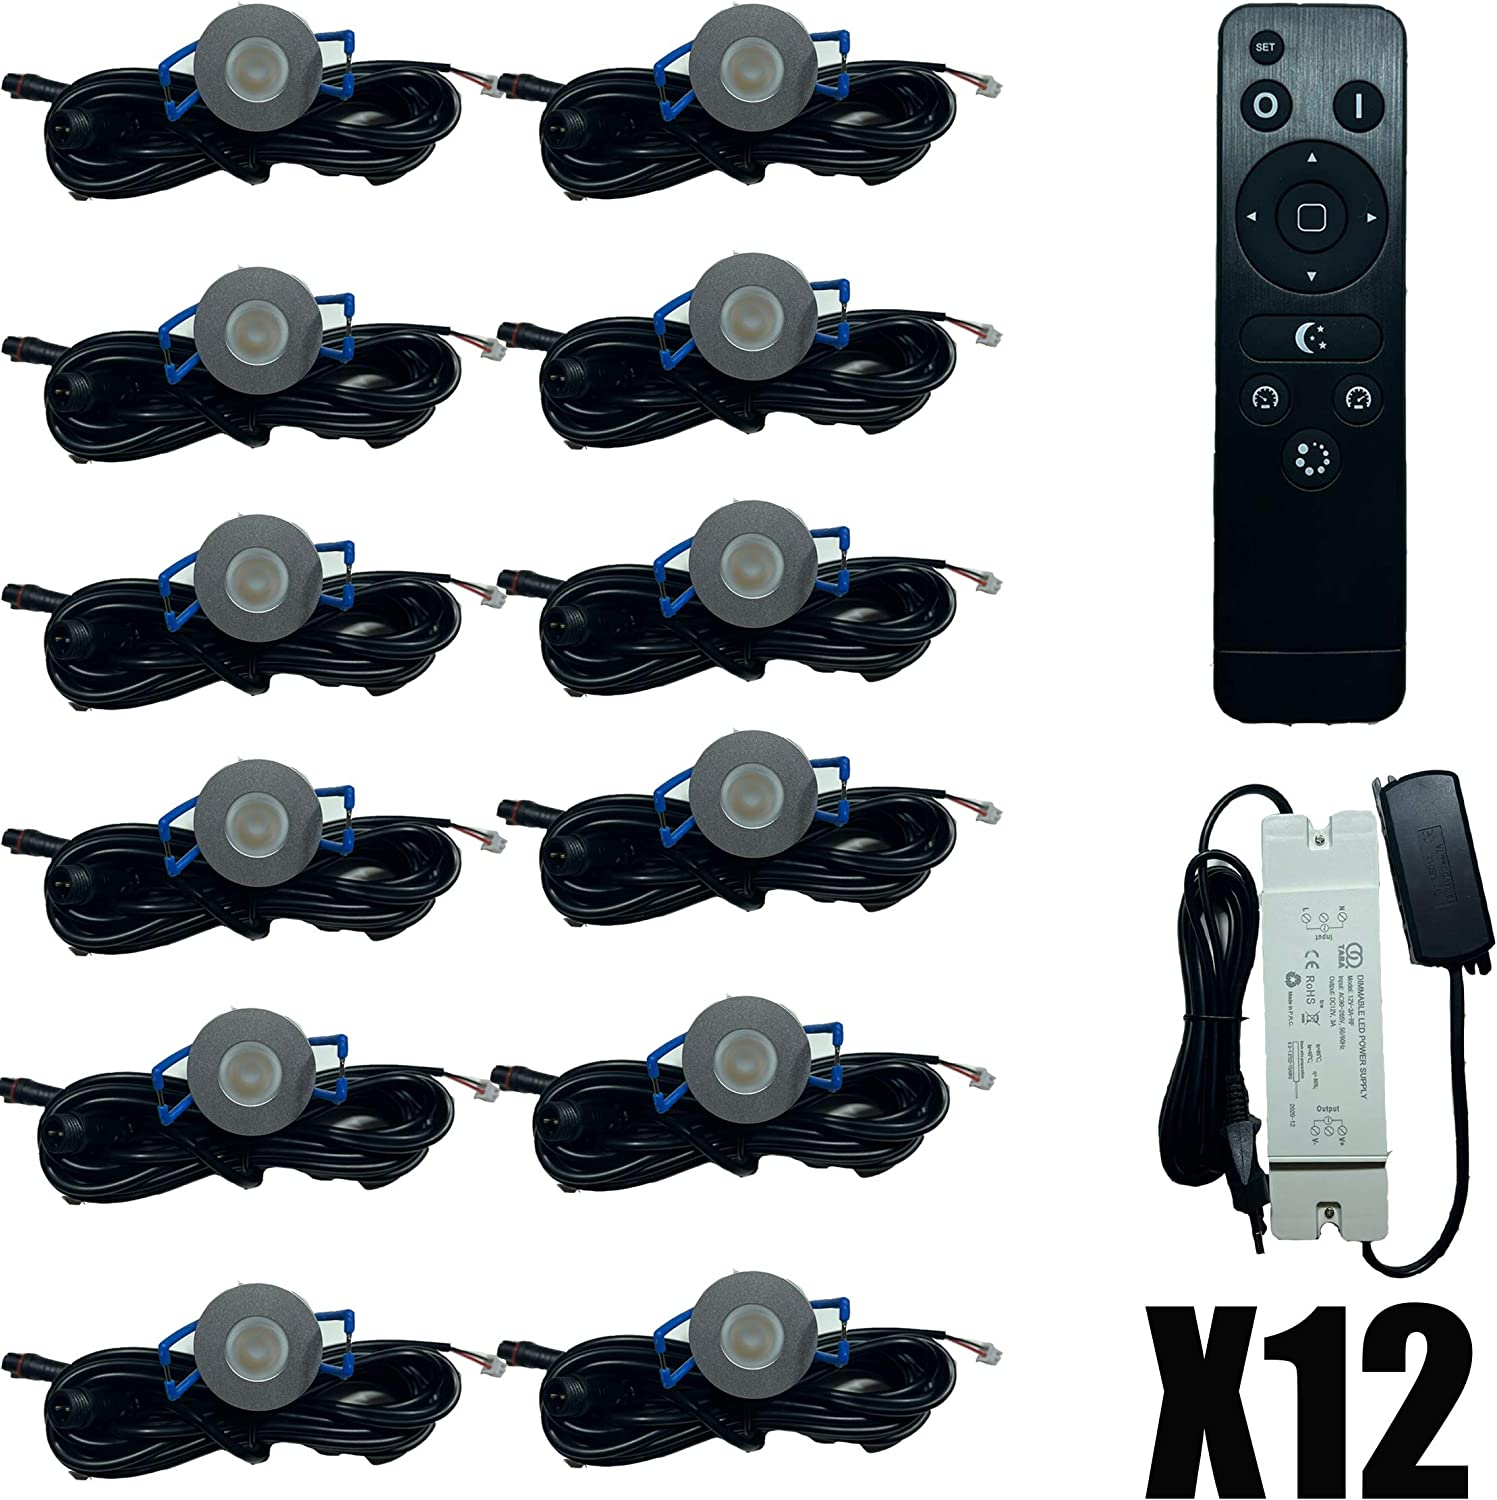 12x LED Lighting 3W Dimmable with Remote Control IP65 Against Water Penetration